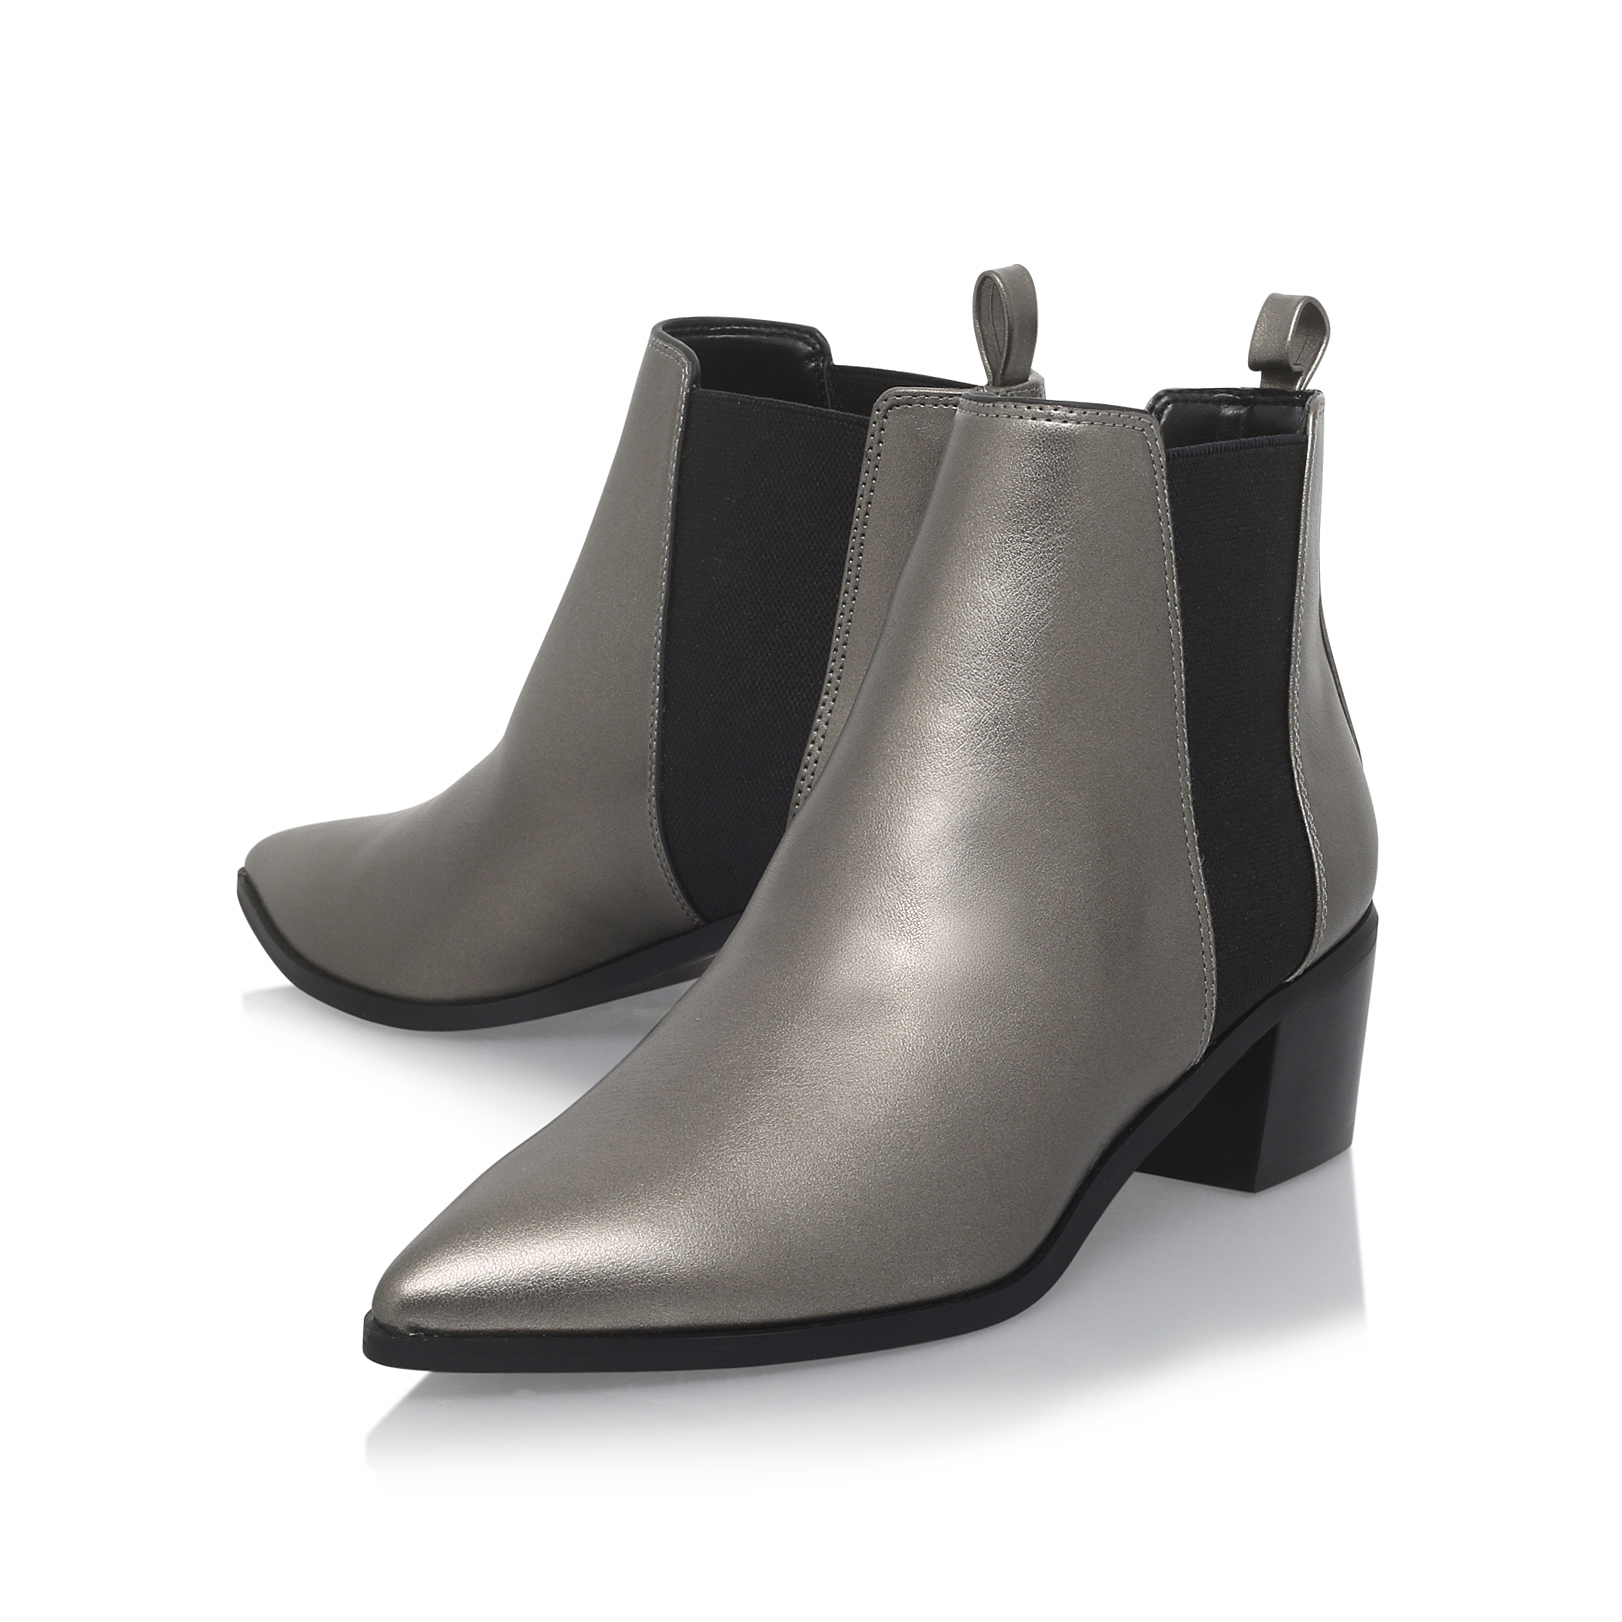 Factory Outlet Online Discount Finishline Womens Senta Chelsea Boots Kurt Geiger Newest Online 3YhzgX0zAw